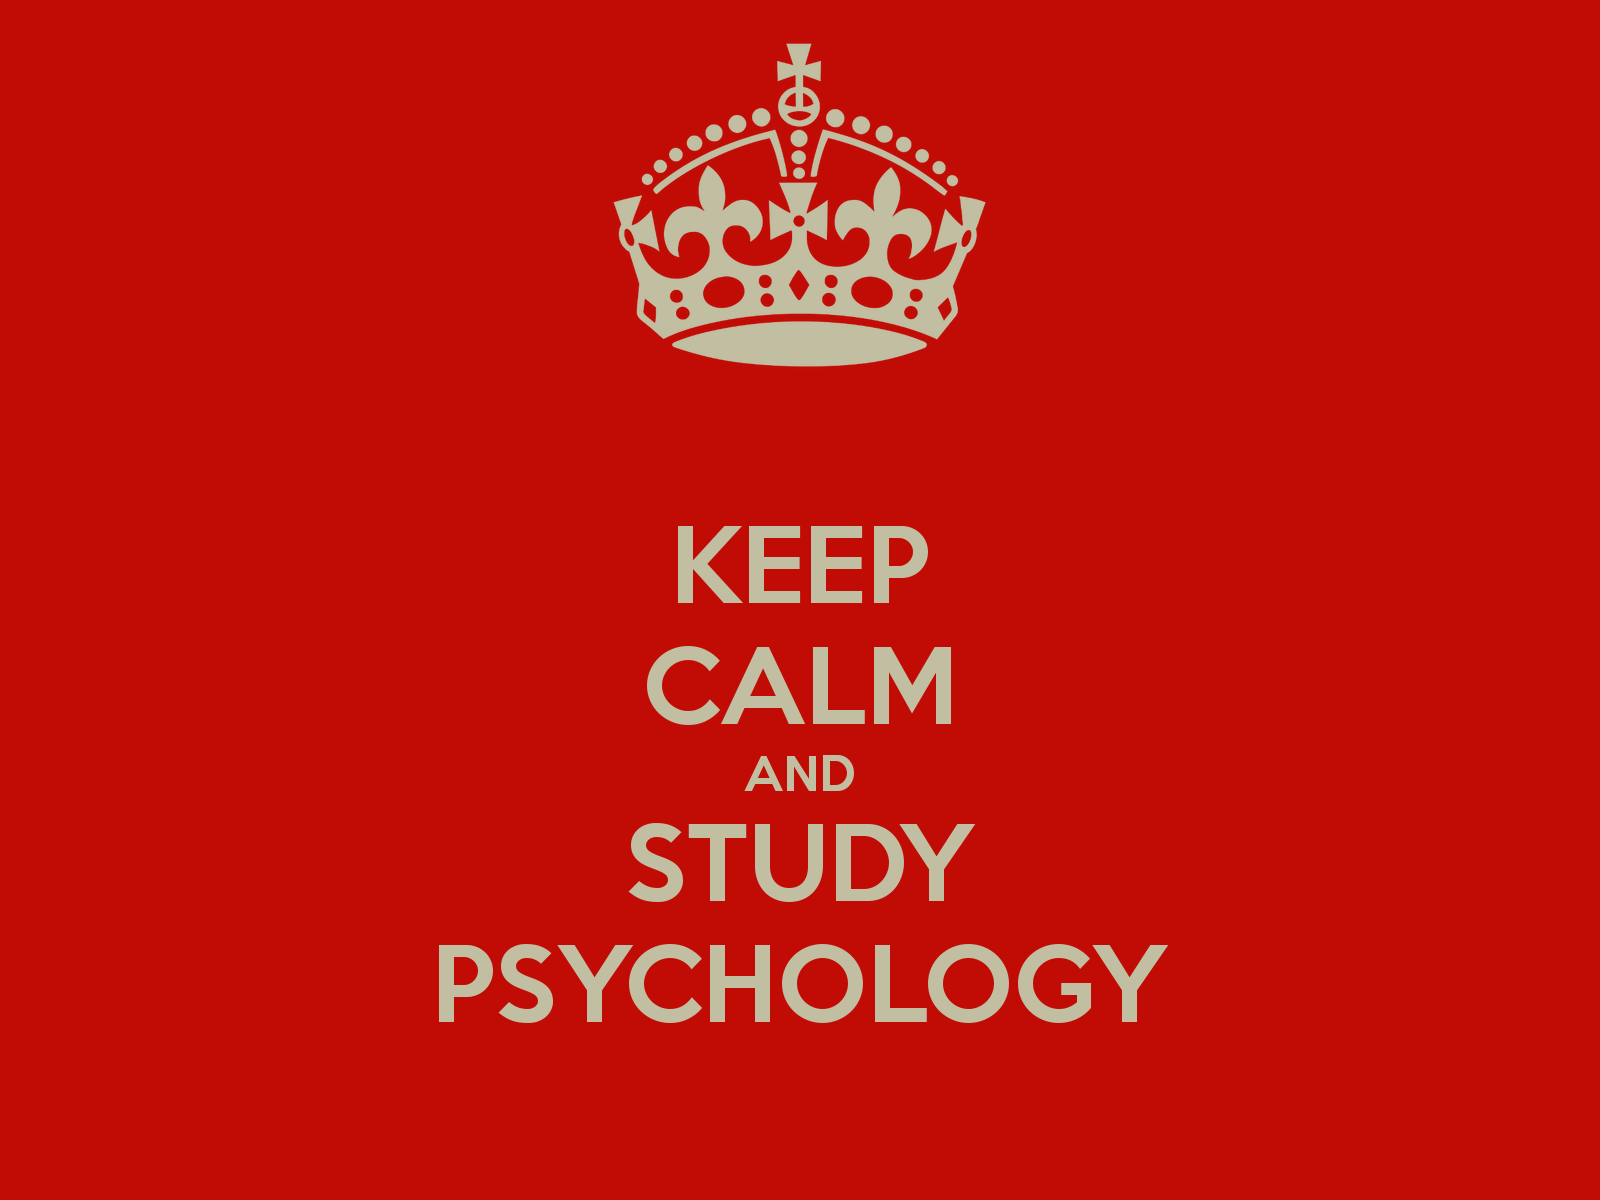 Starting with psychology